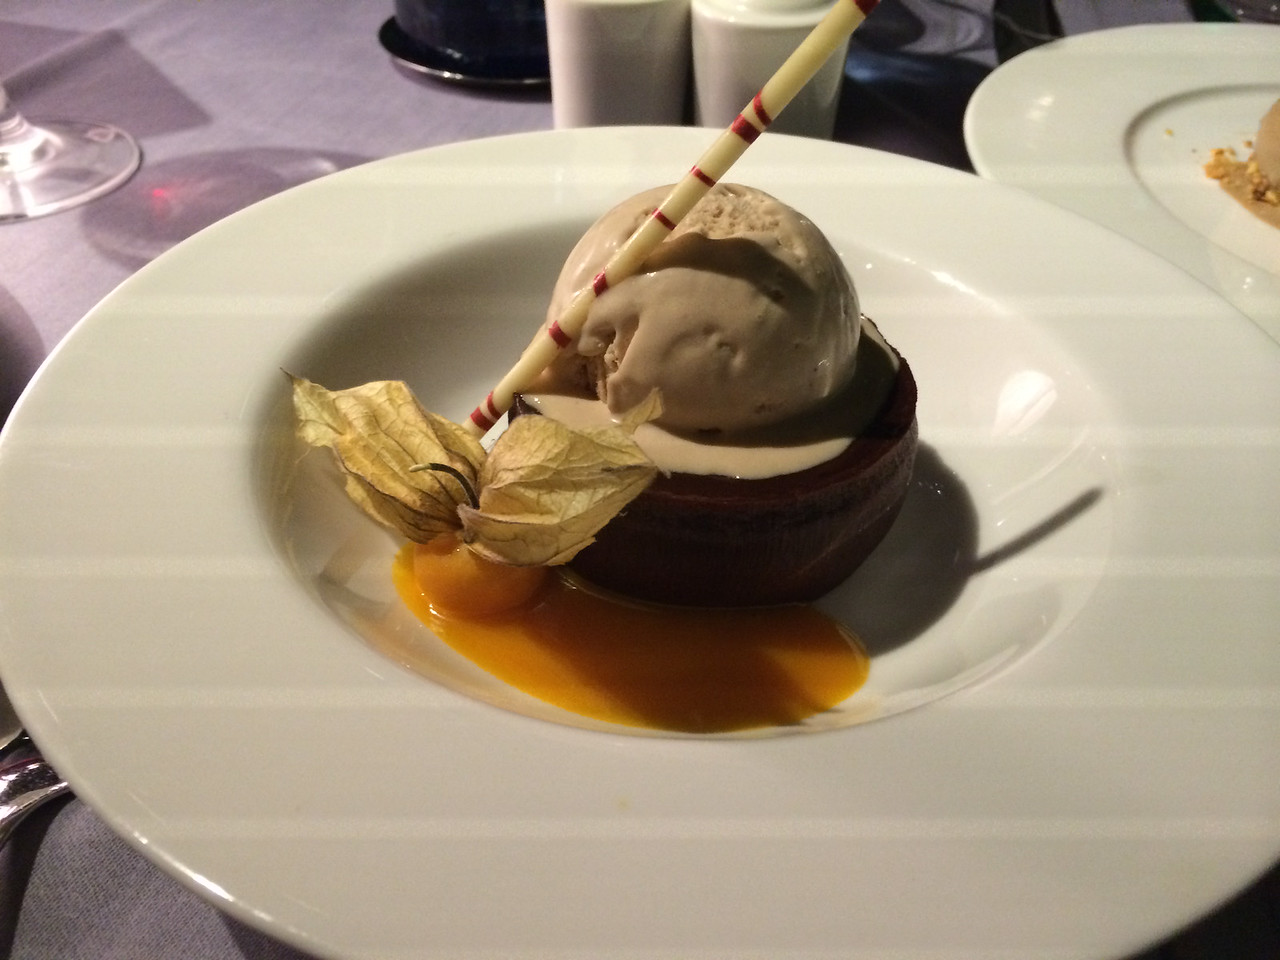 Yum. Dessert of chocolate cake and ice cream with mango sauce... Yum!